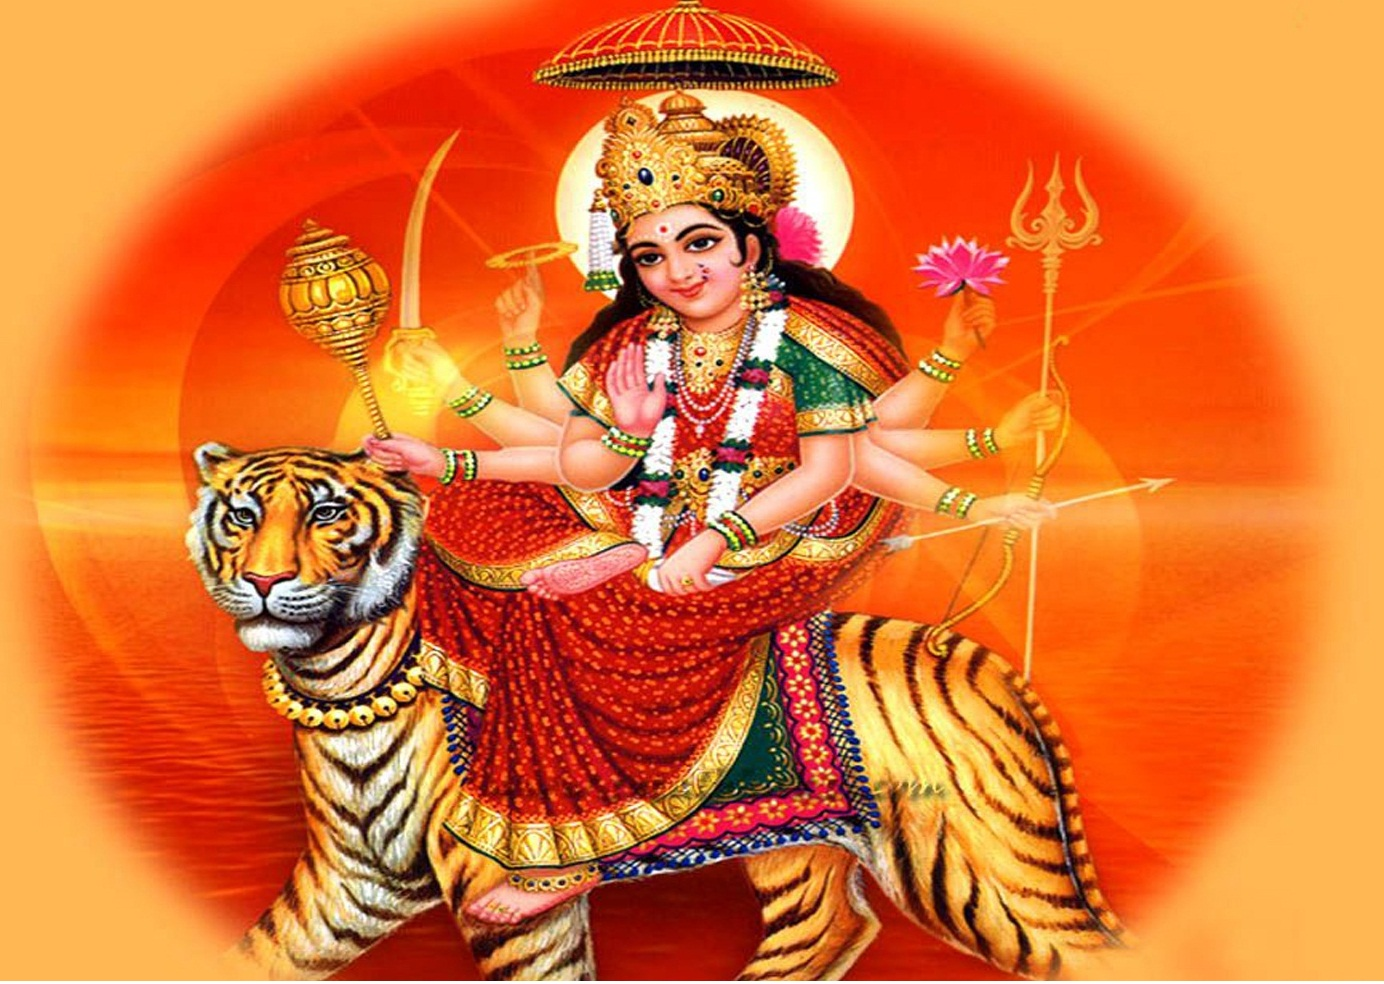 Best 3 487 god hd images hindu god wallpapers for - God images wallpapers ...